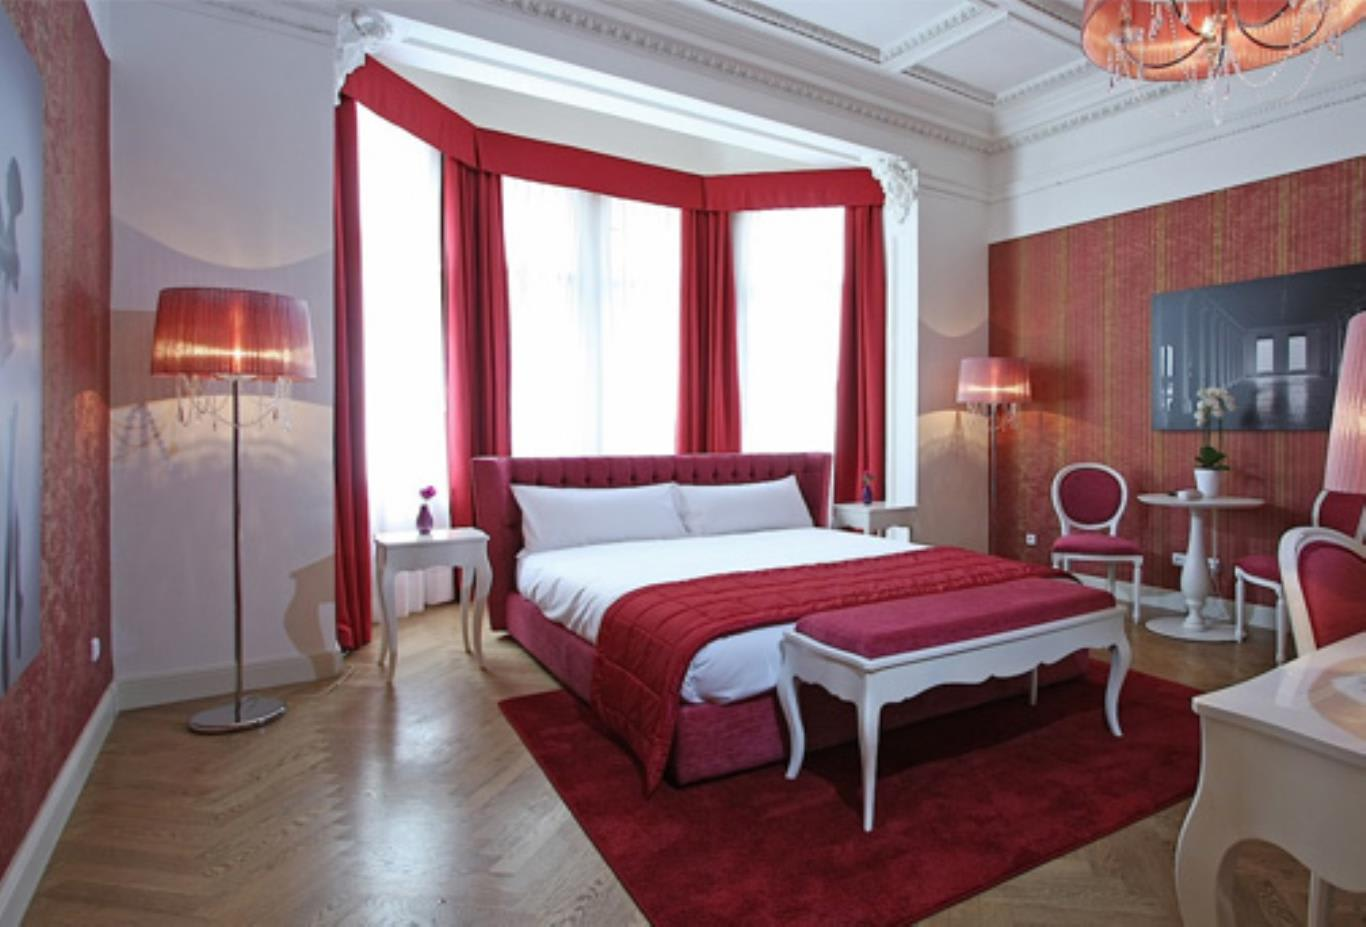 Rooms - Ballerina Deluxe and Twin Room